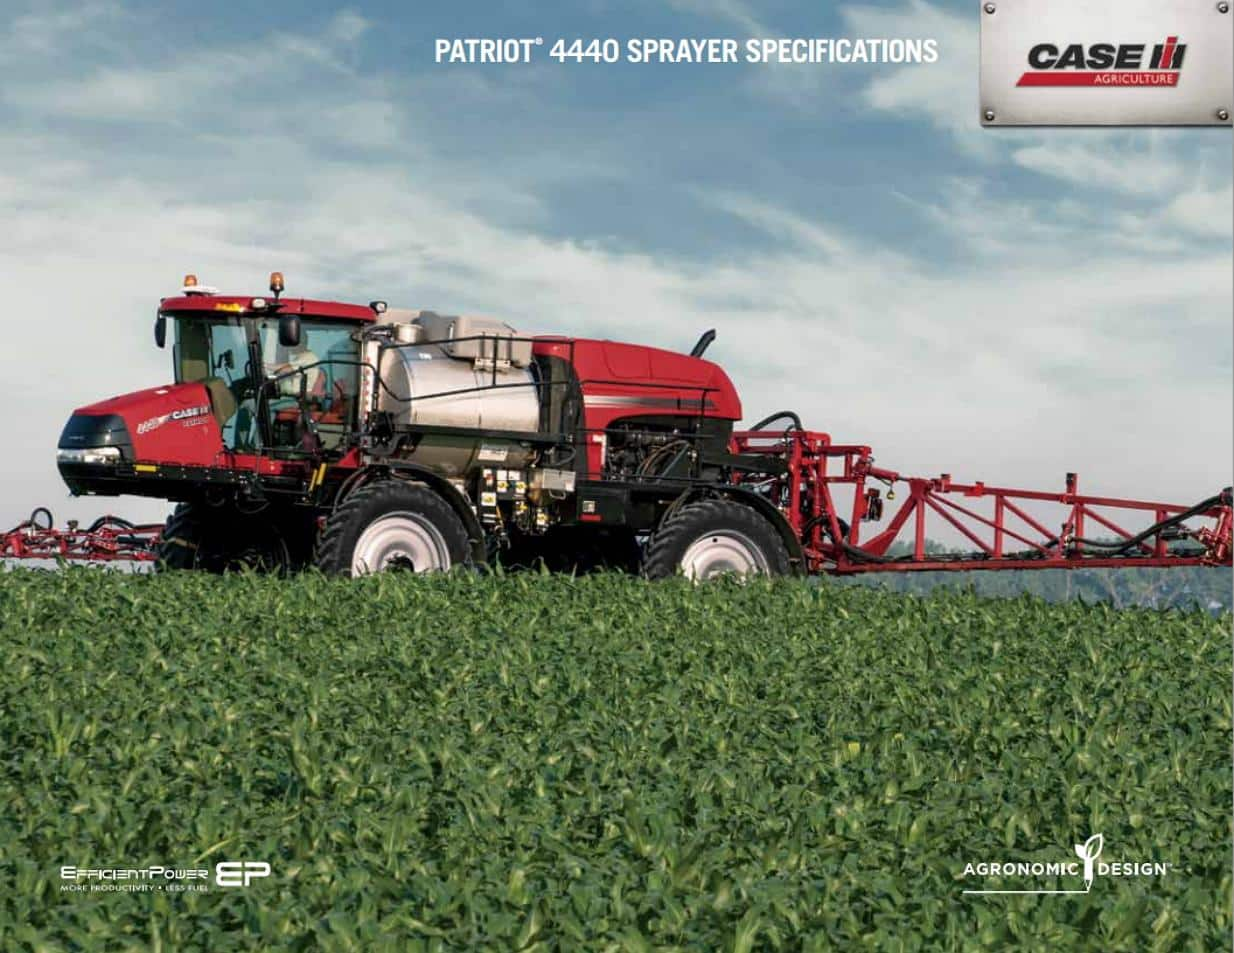 Patriot 4440 Sprayer Spec Sheet